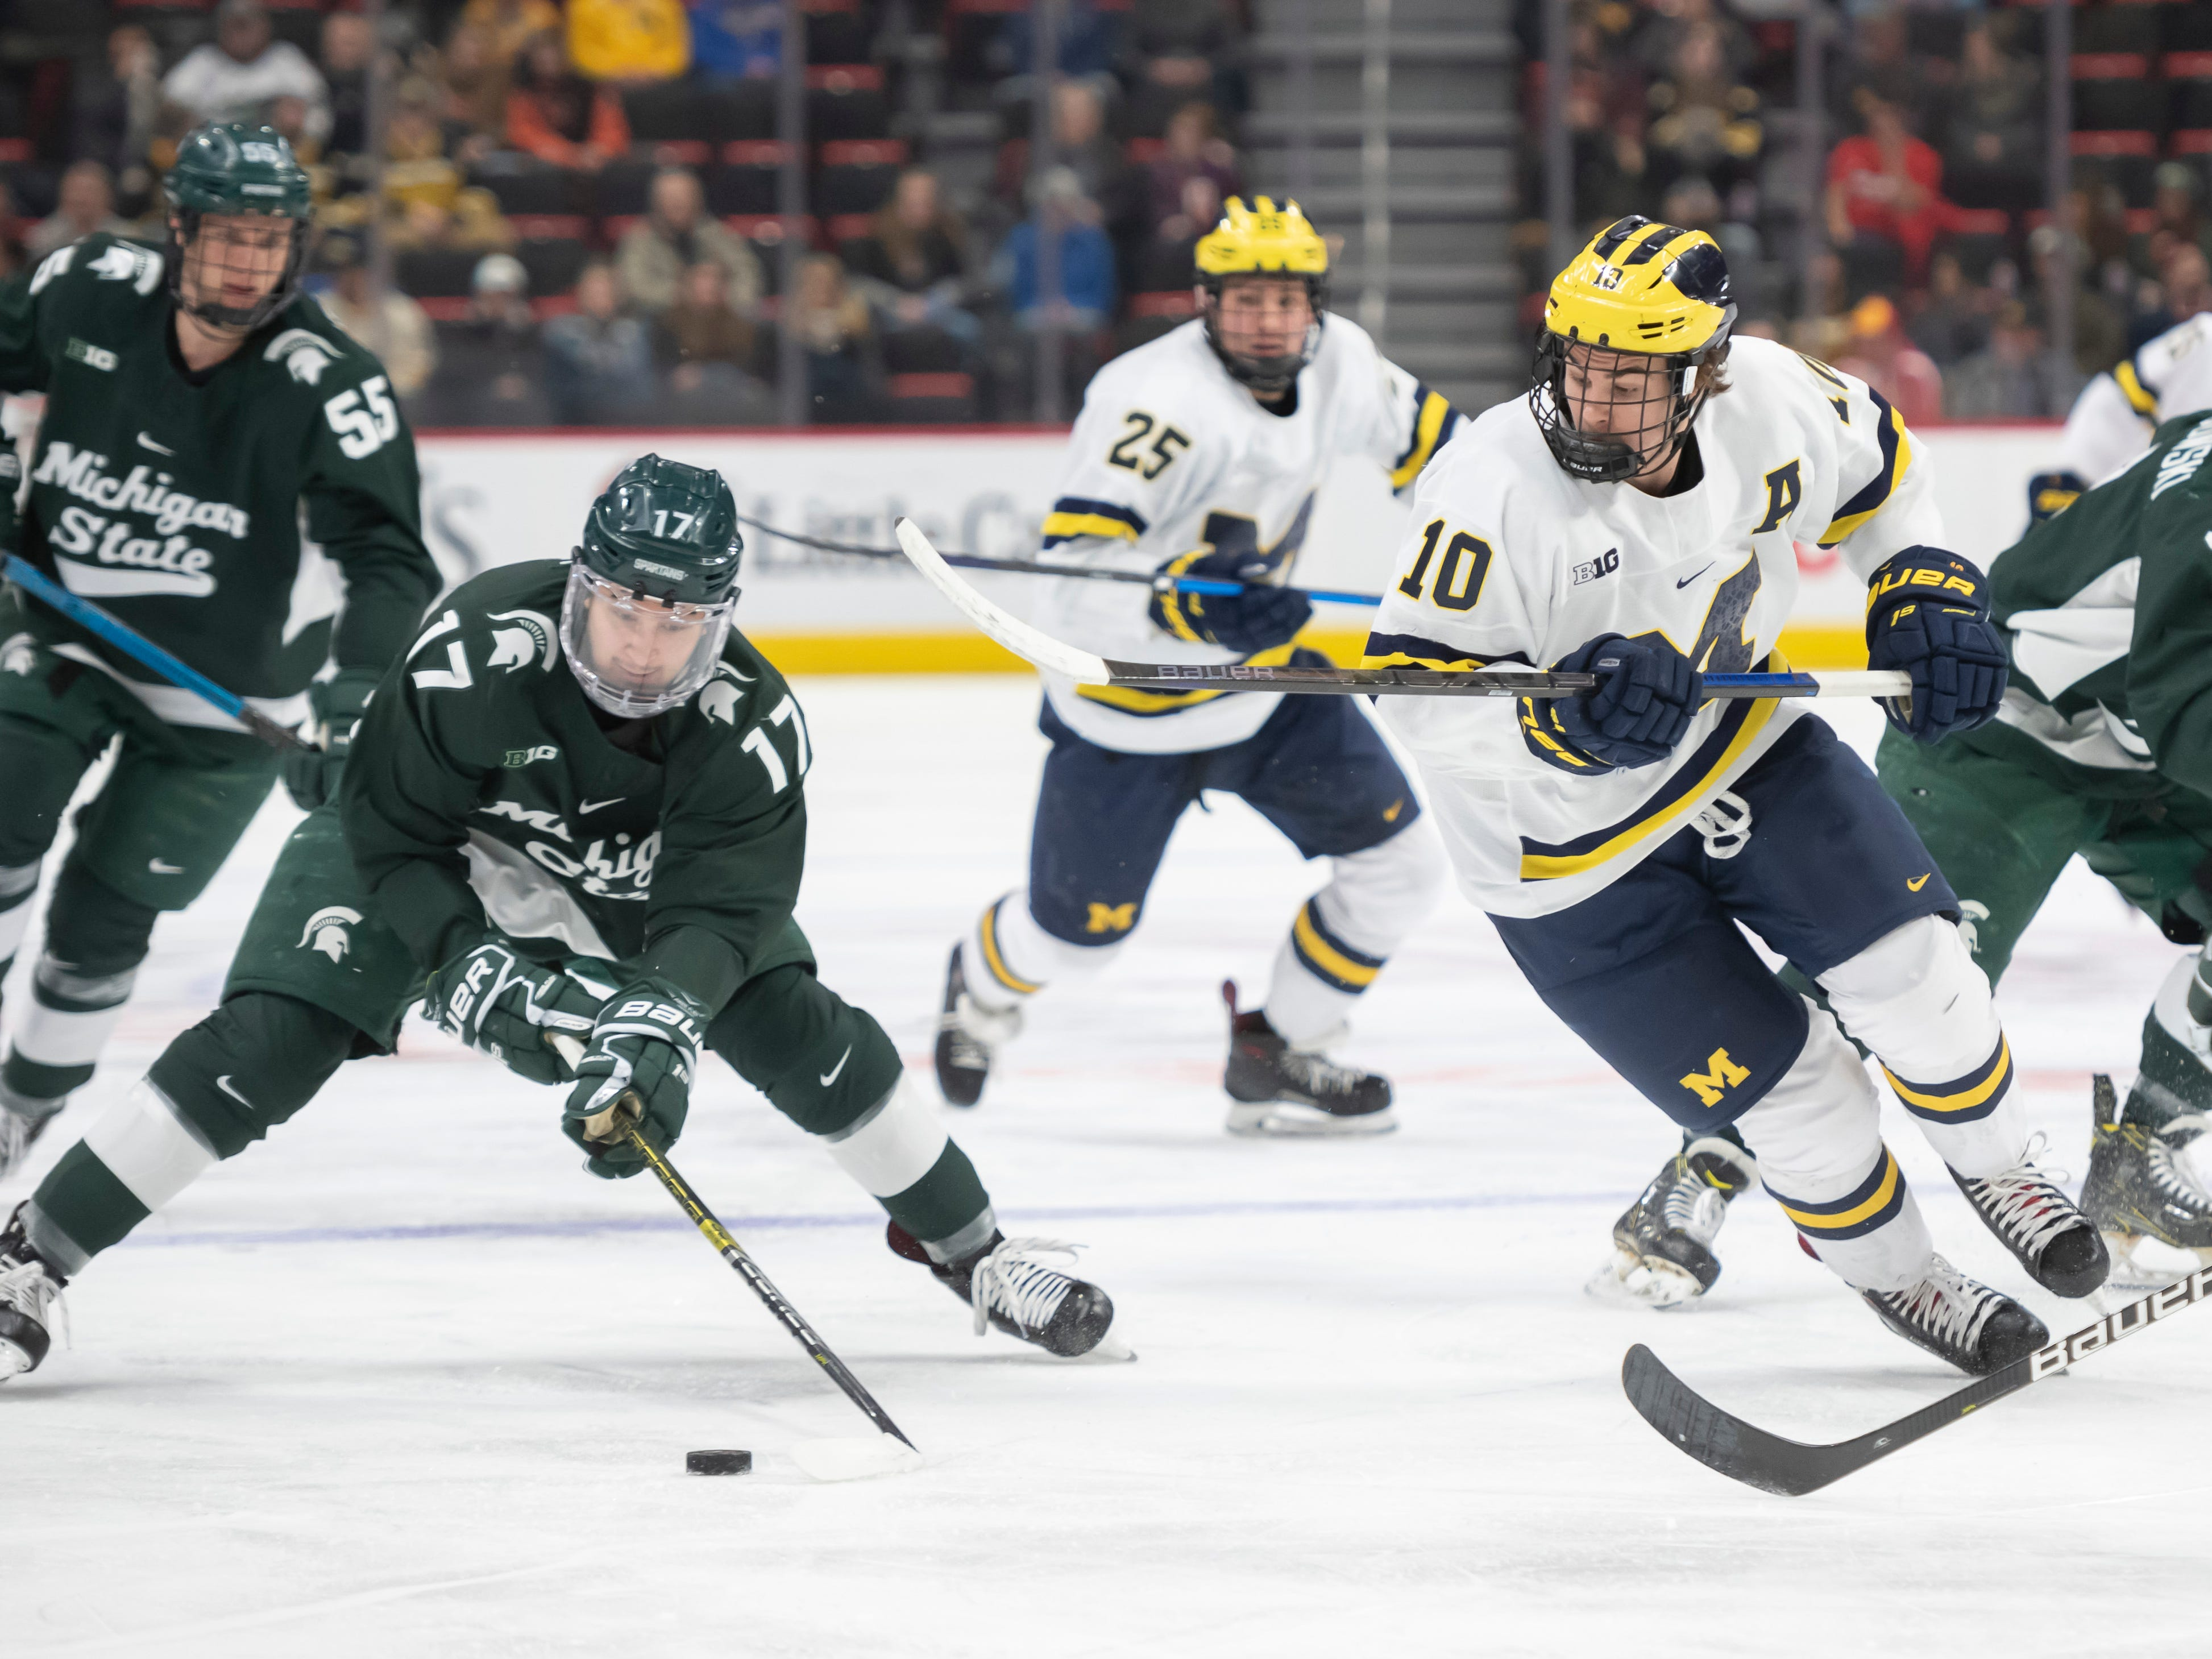 Michigan State forward Taro Hirose tries to keep the puck away from Michigan forward Will Lockwood in the first period.